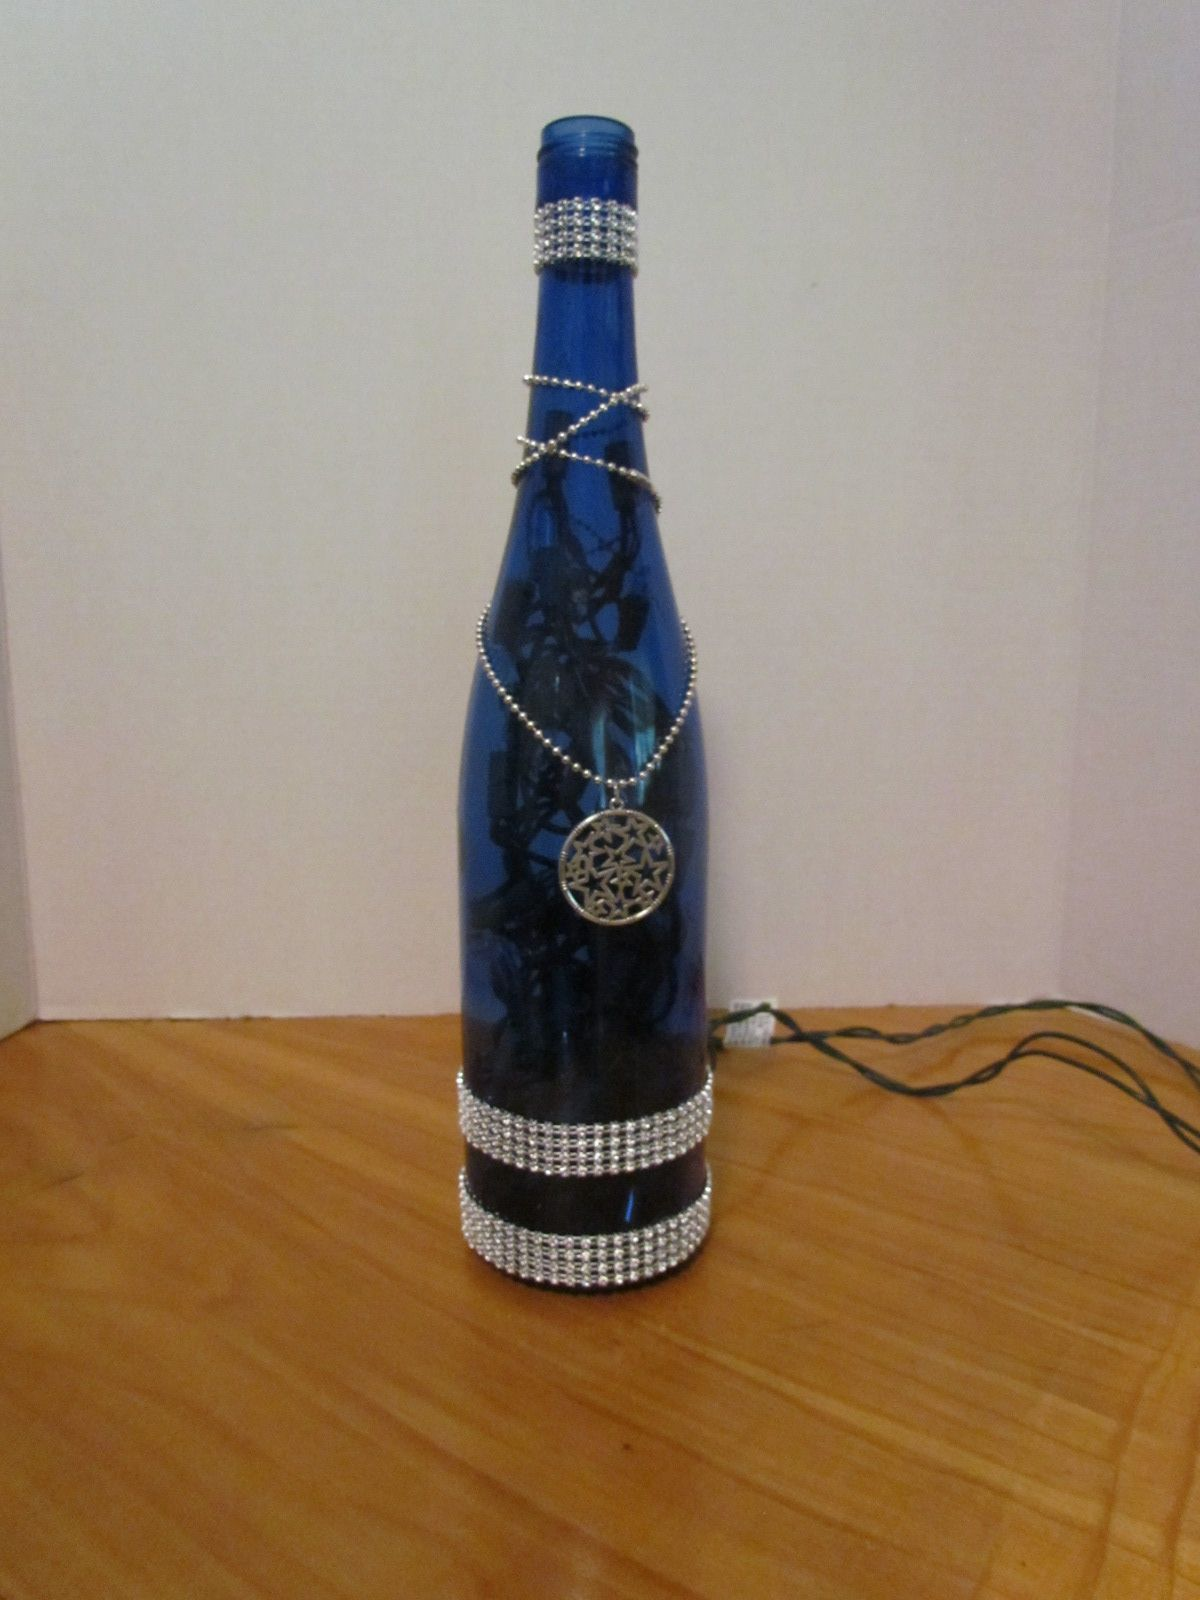 Blinged, Lighted Blue Wine Bottle with chain and charm.